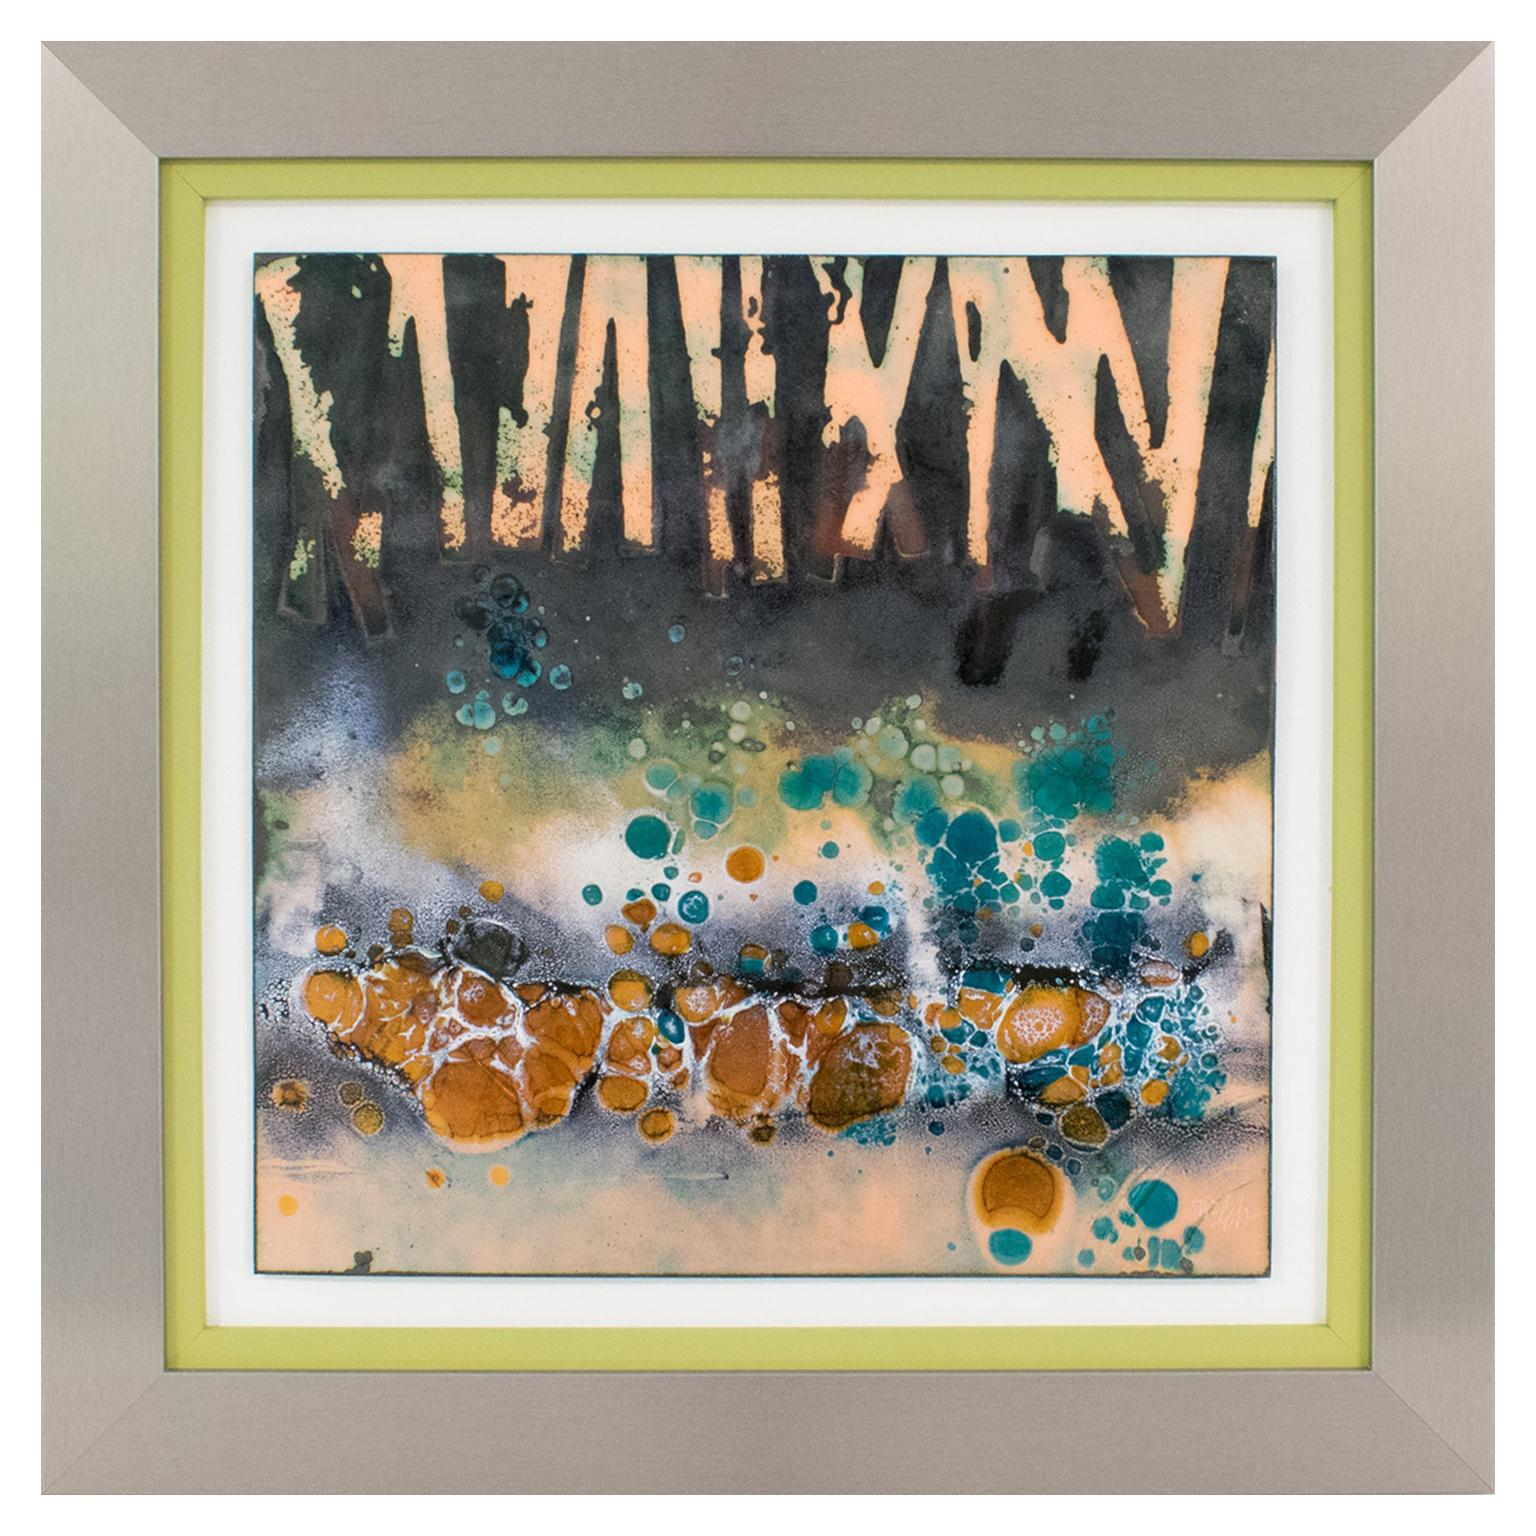 George F Welch Abstract Judaica Artwork Enamel Panel Painting